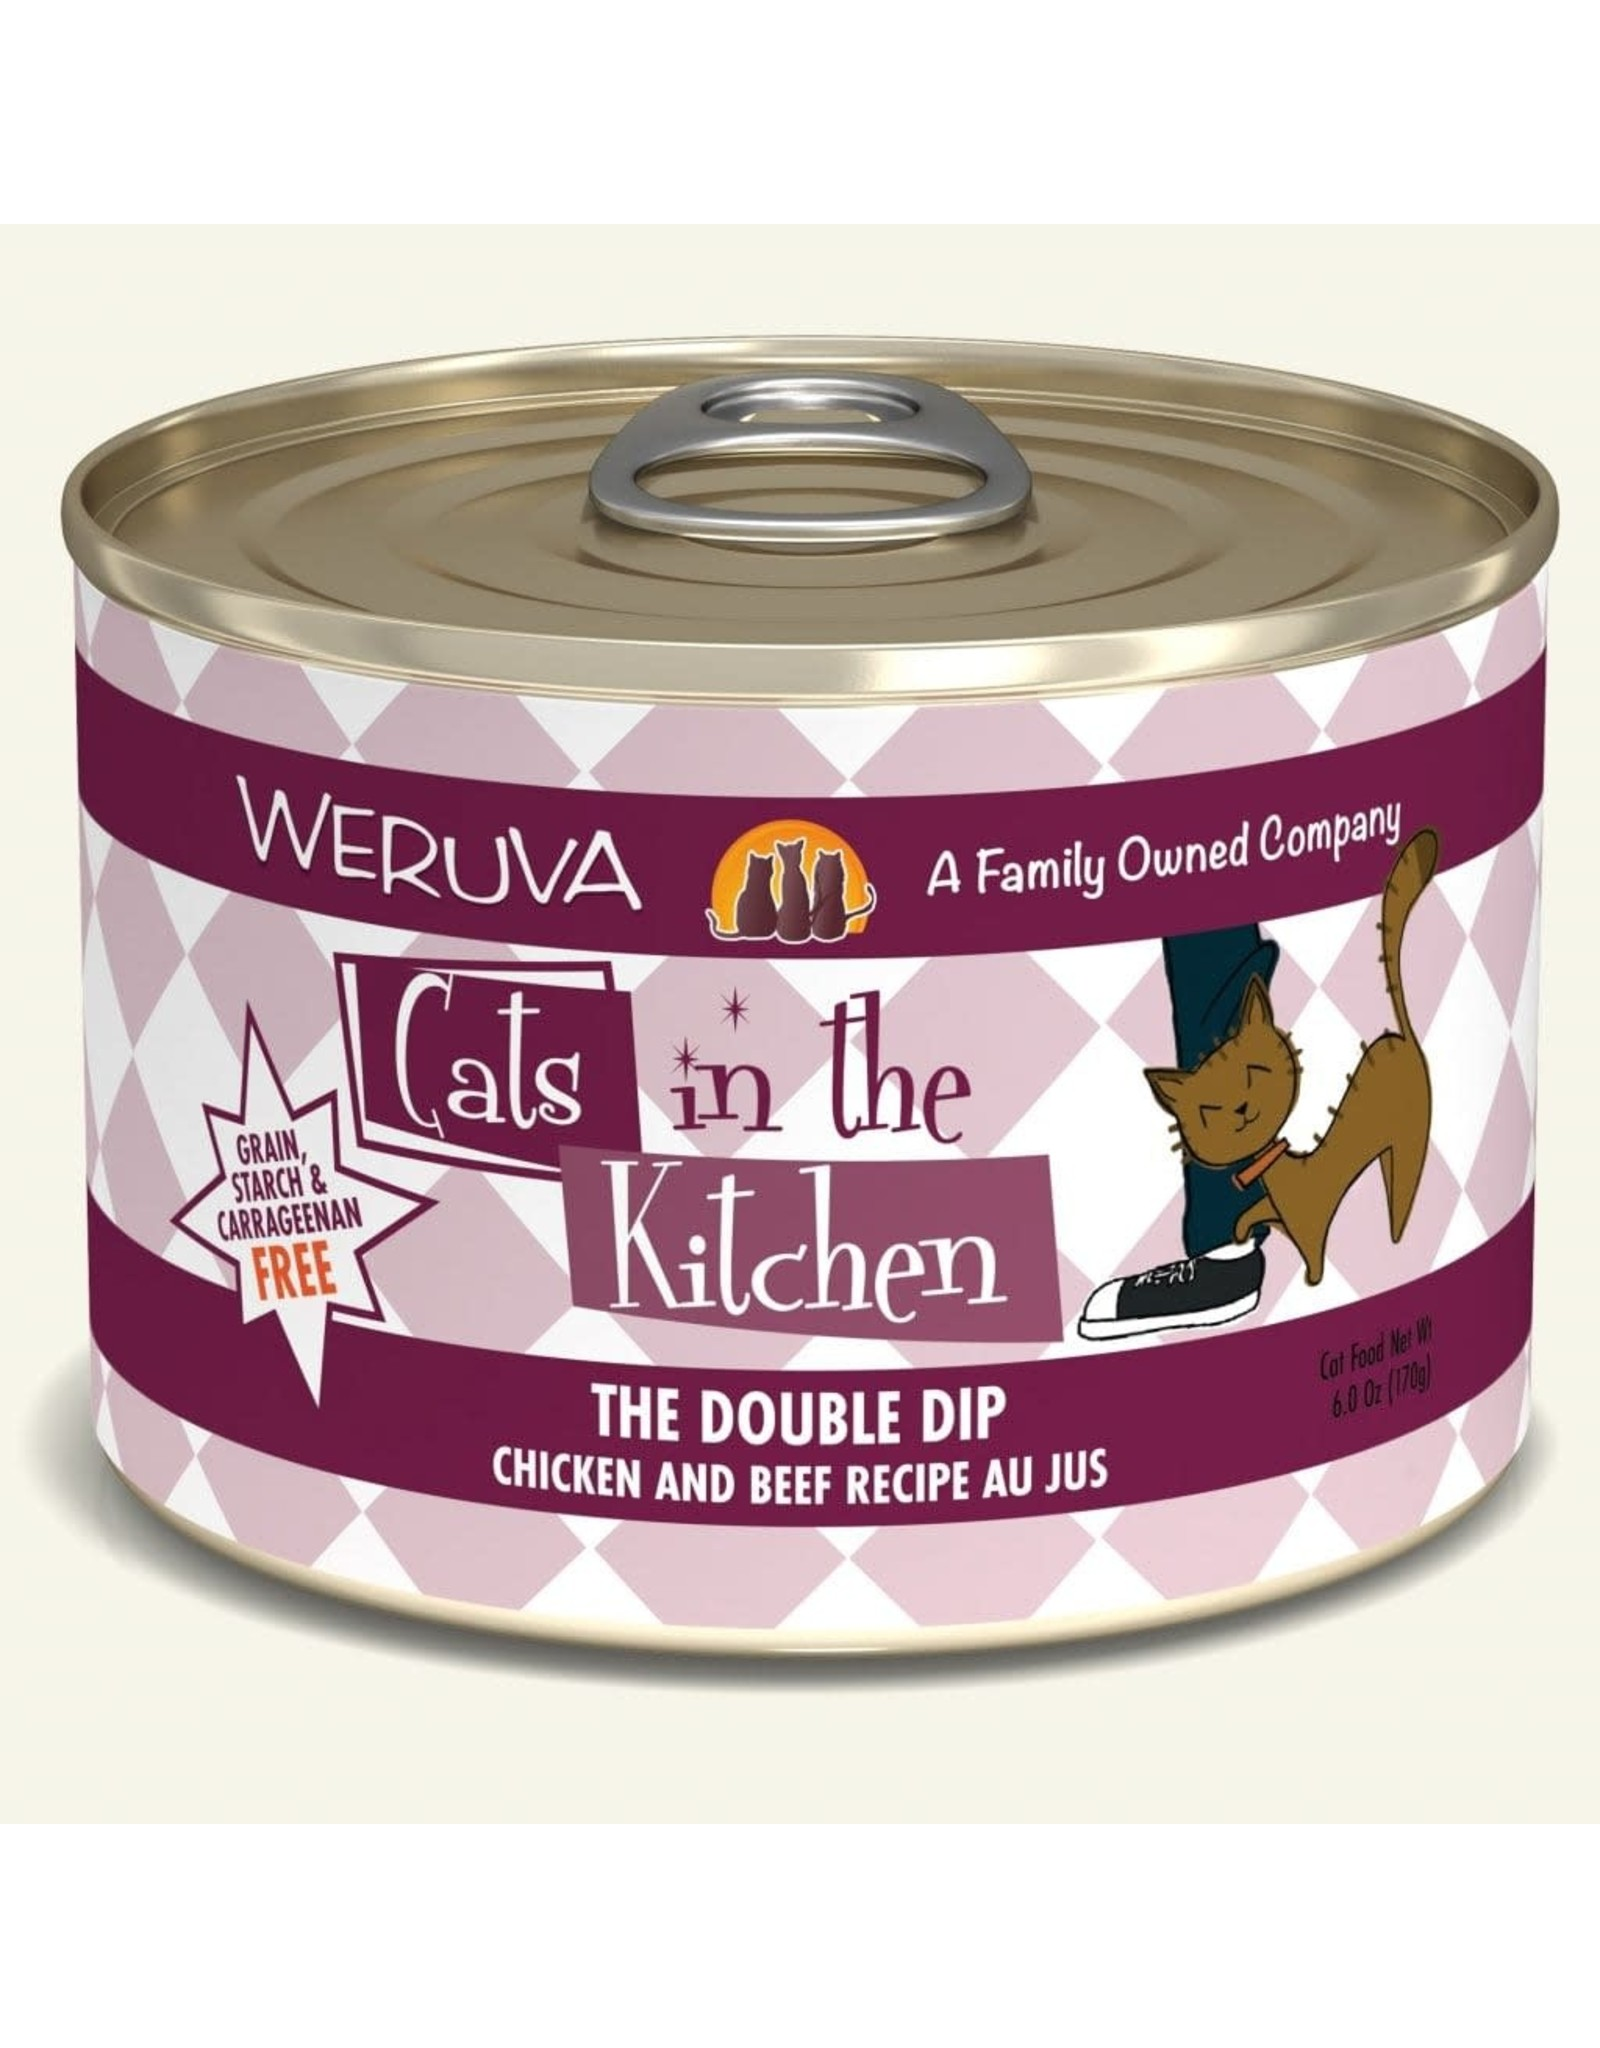 Weruva Weruva Cats in the Kitchen The Double Dip 6oz